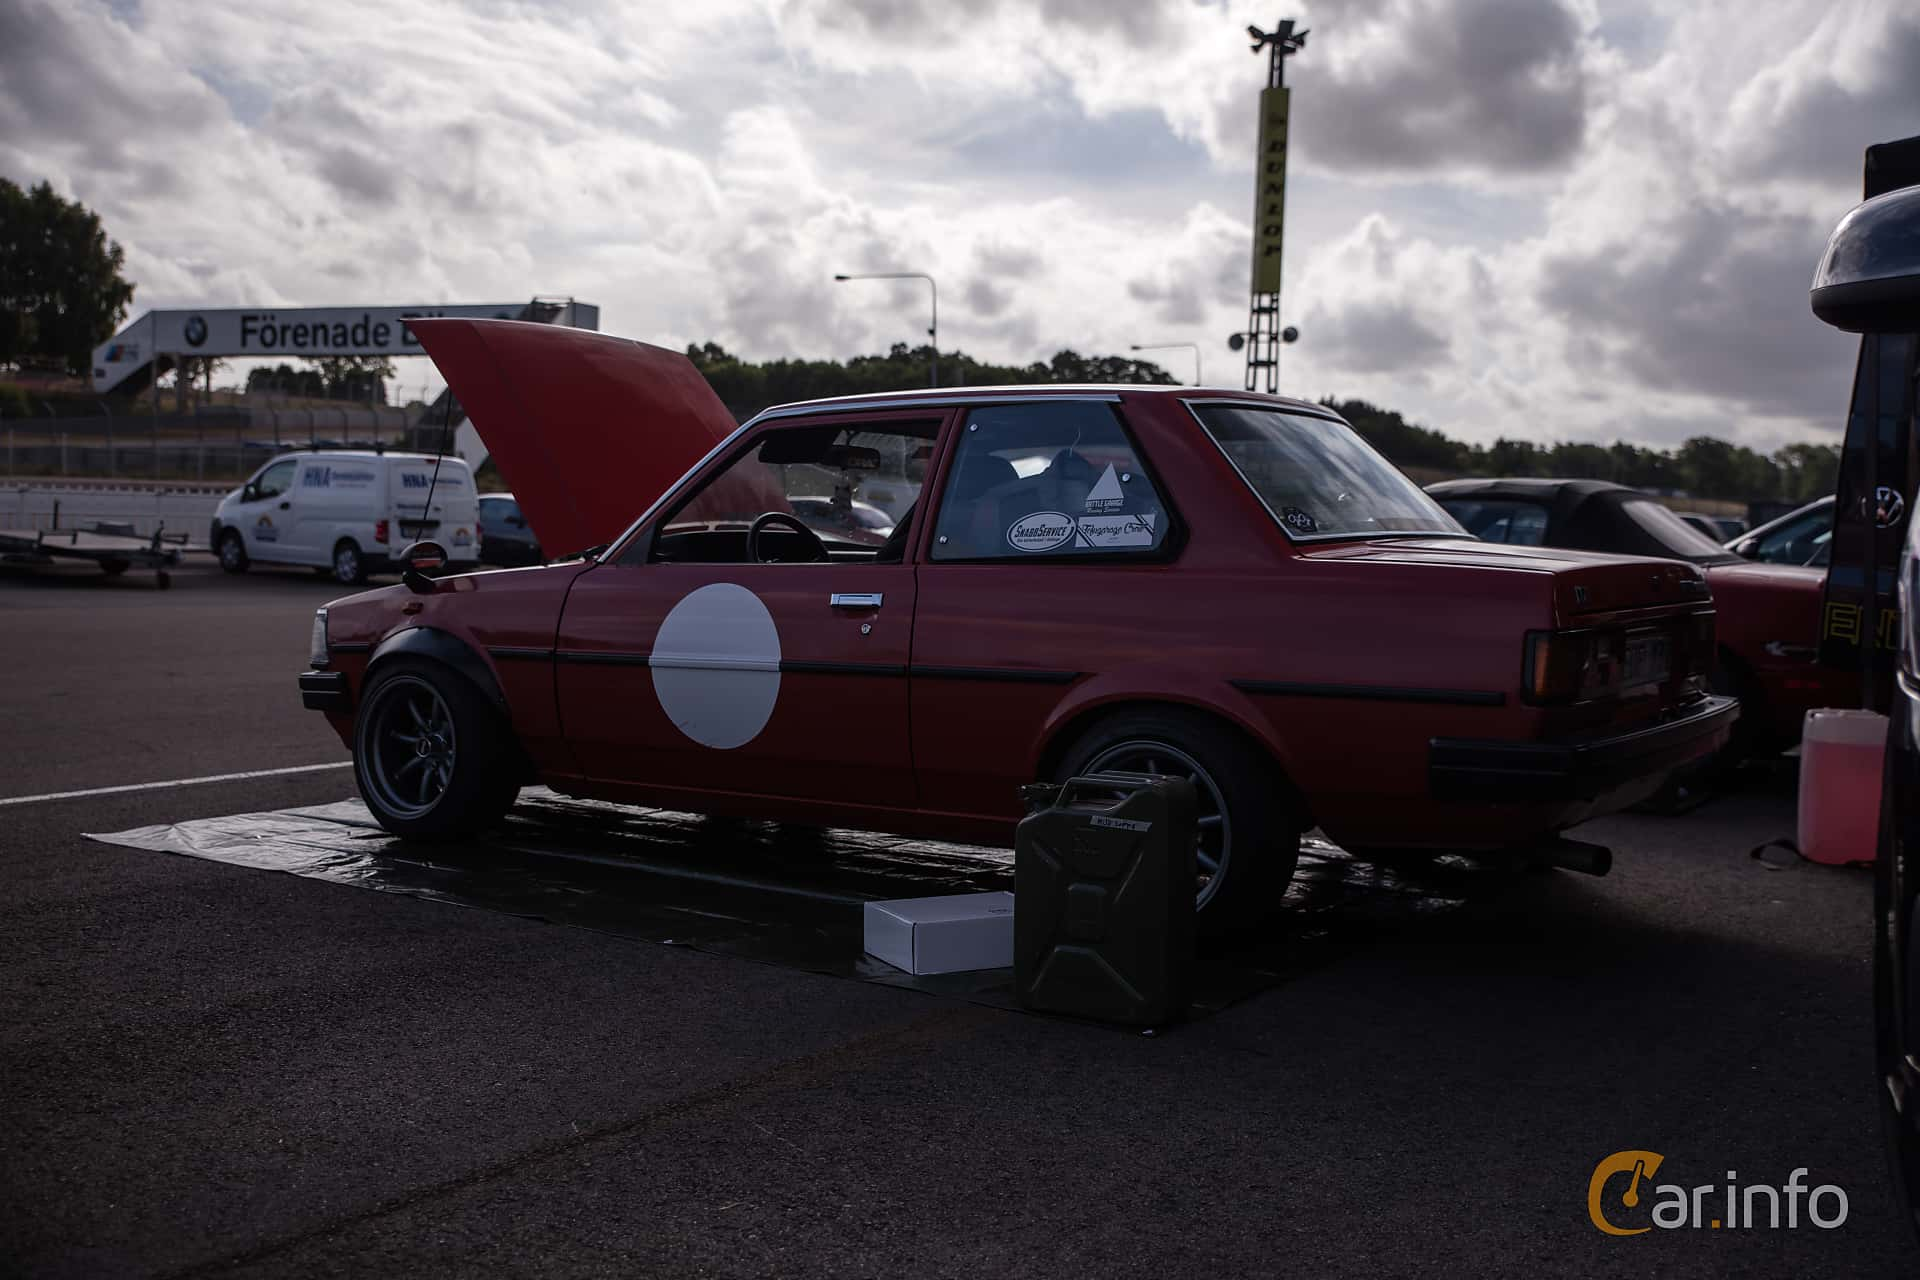 Toyota Corolla 2-door Sedan 1.3 Manual, 60hp, 1982 at JapTuning Trackday 2018 Knutstorp